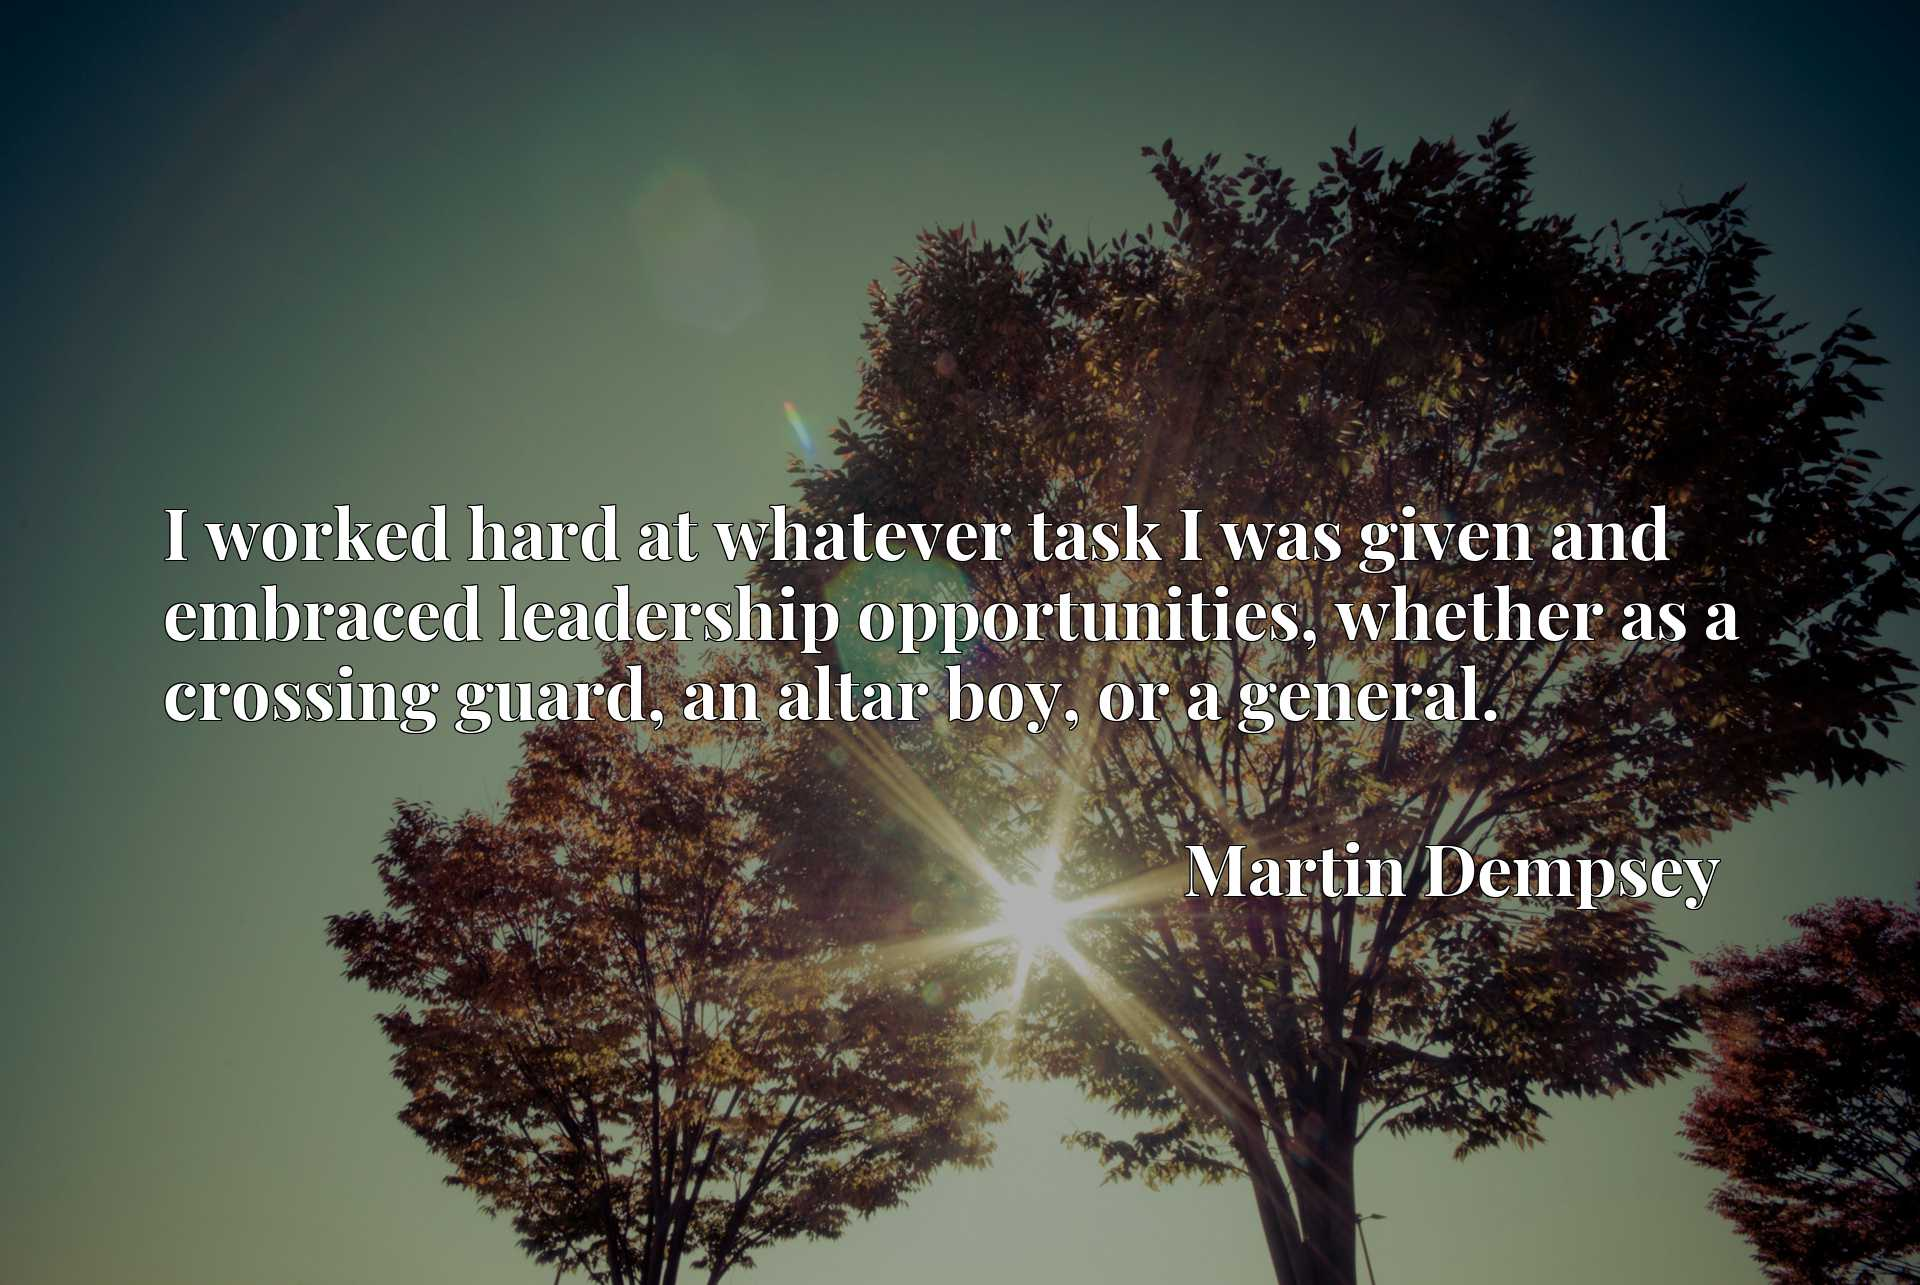 Quote Picture :I worked hard at whatever task I was given and embraced leadership opportunities, whether as a crossing guard, an altar boy, or a general.